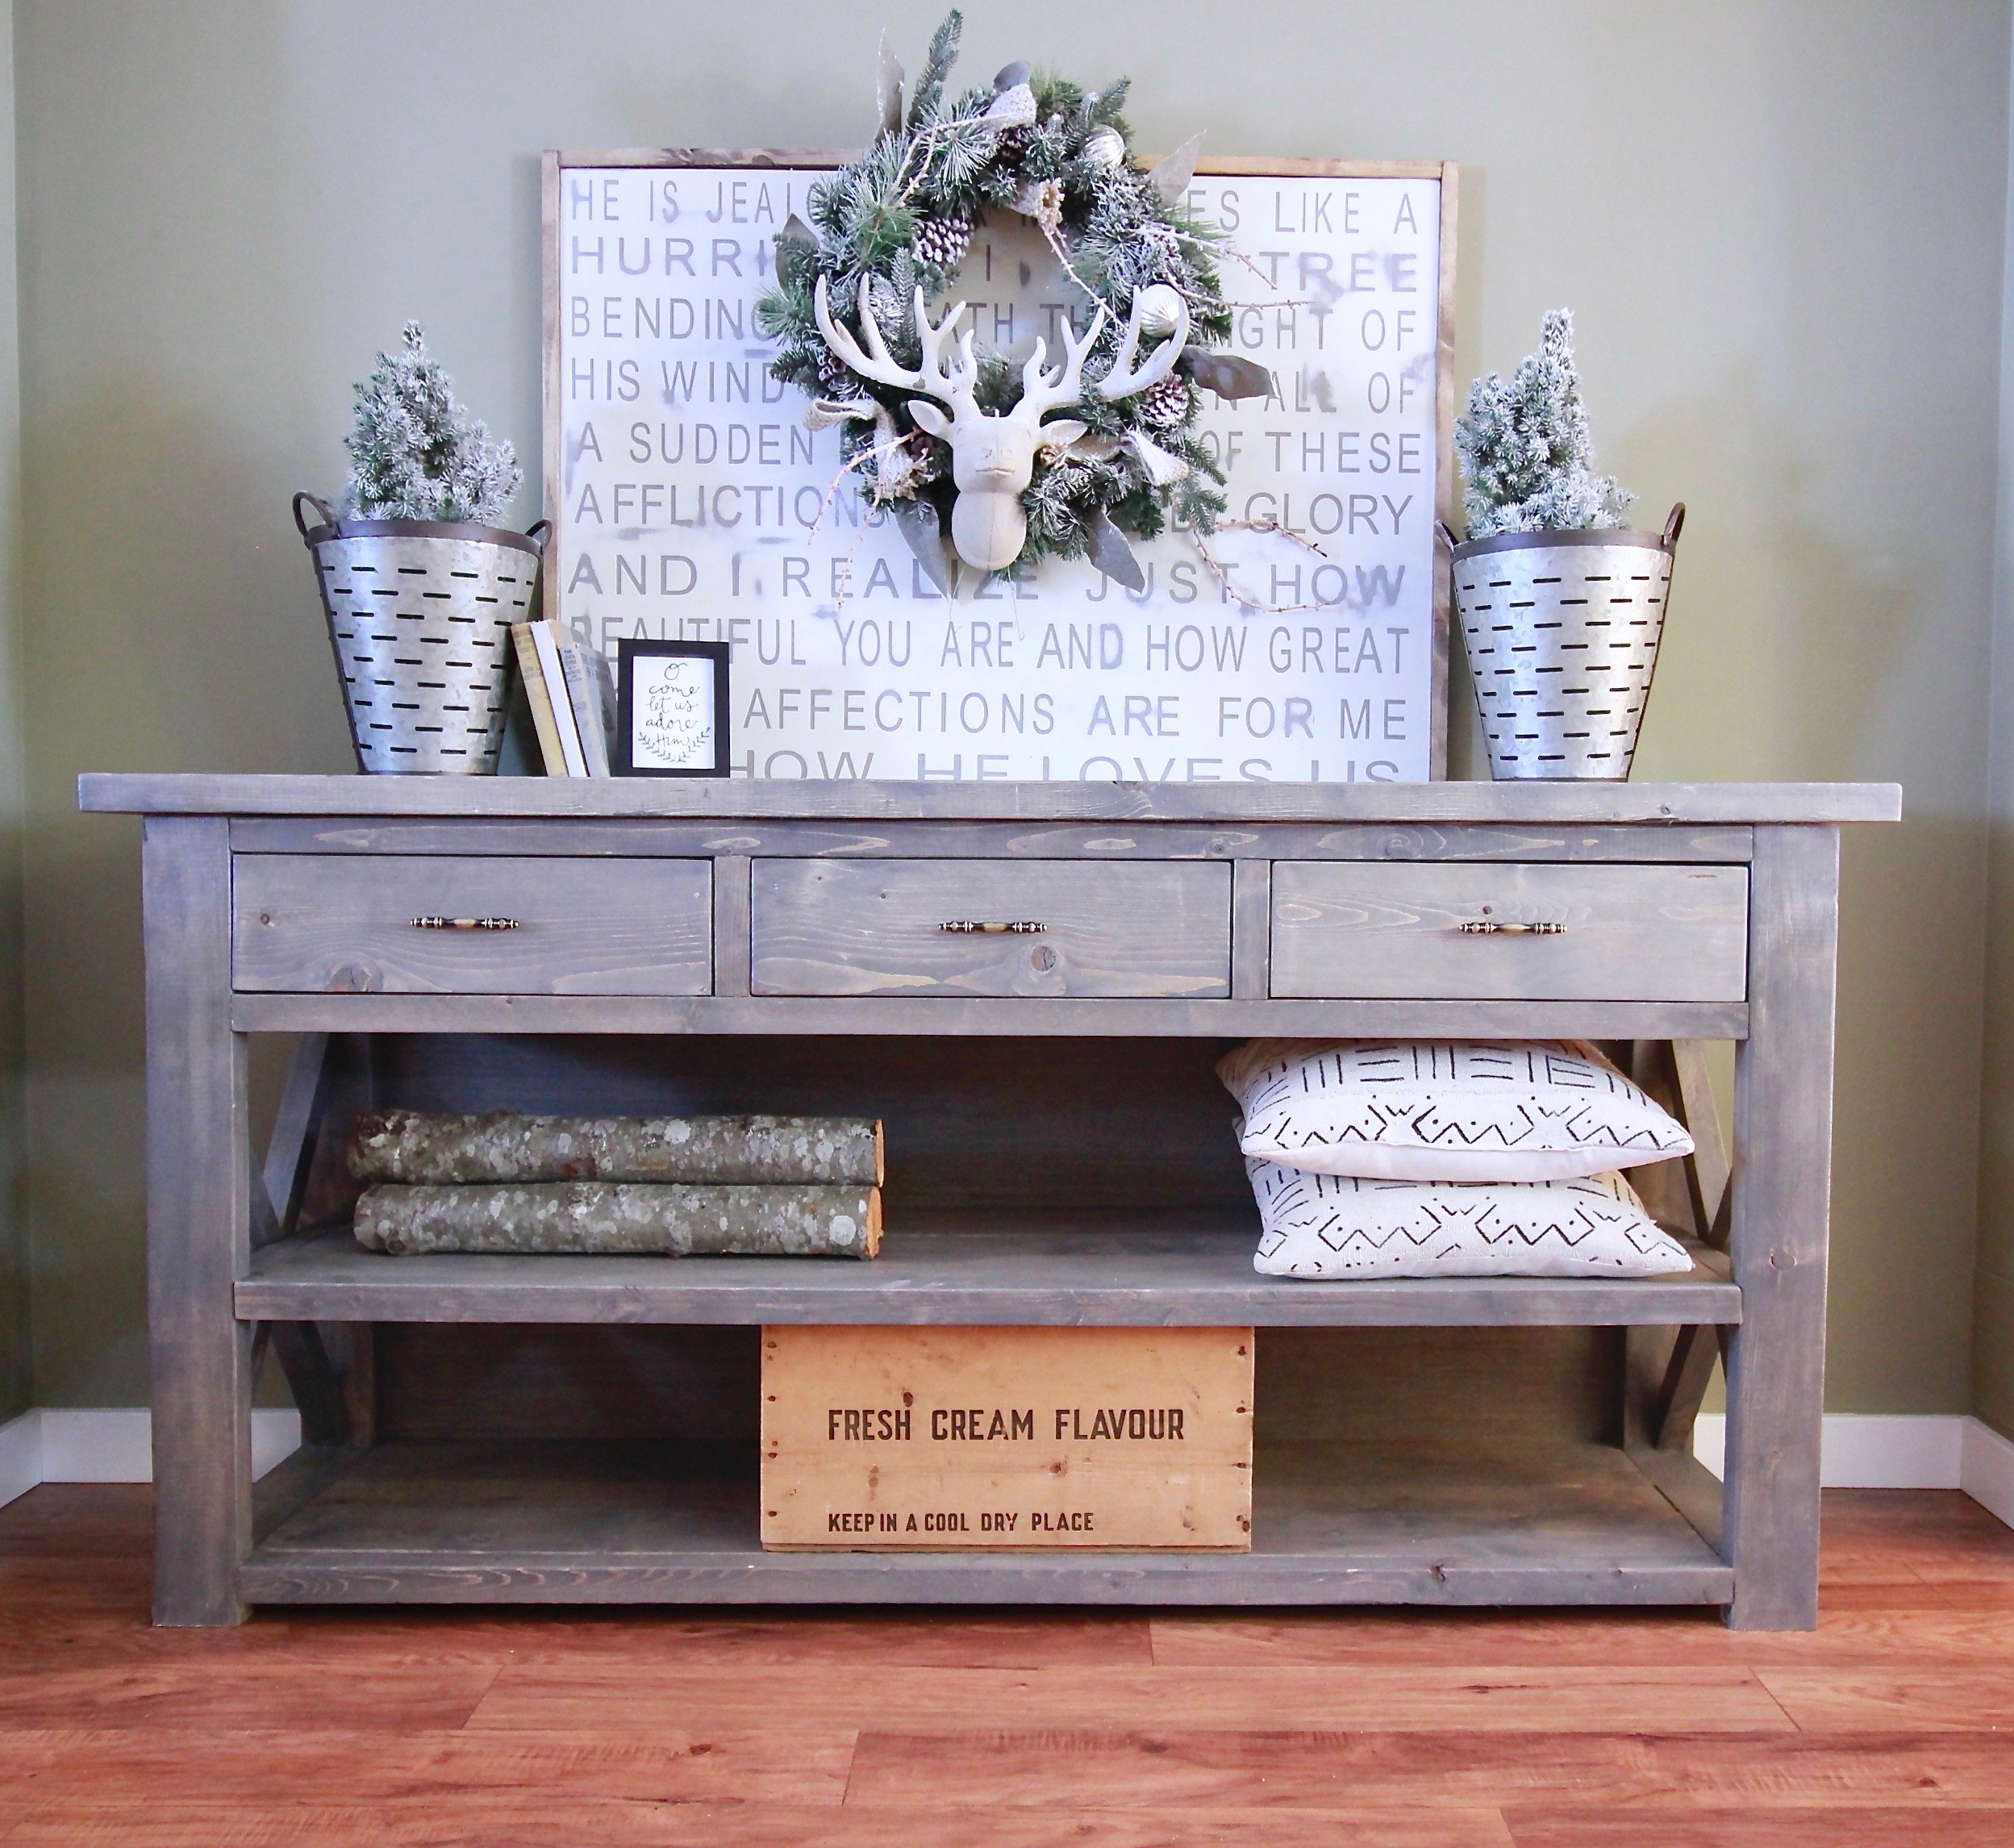 The Rugged Home, Home Decor And DIY Blog